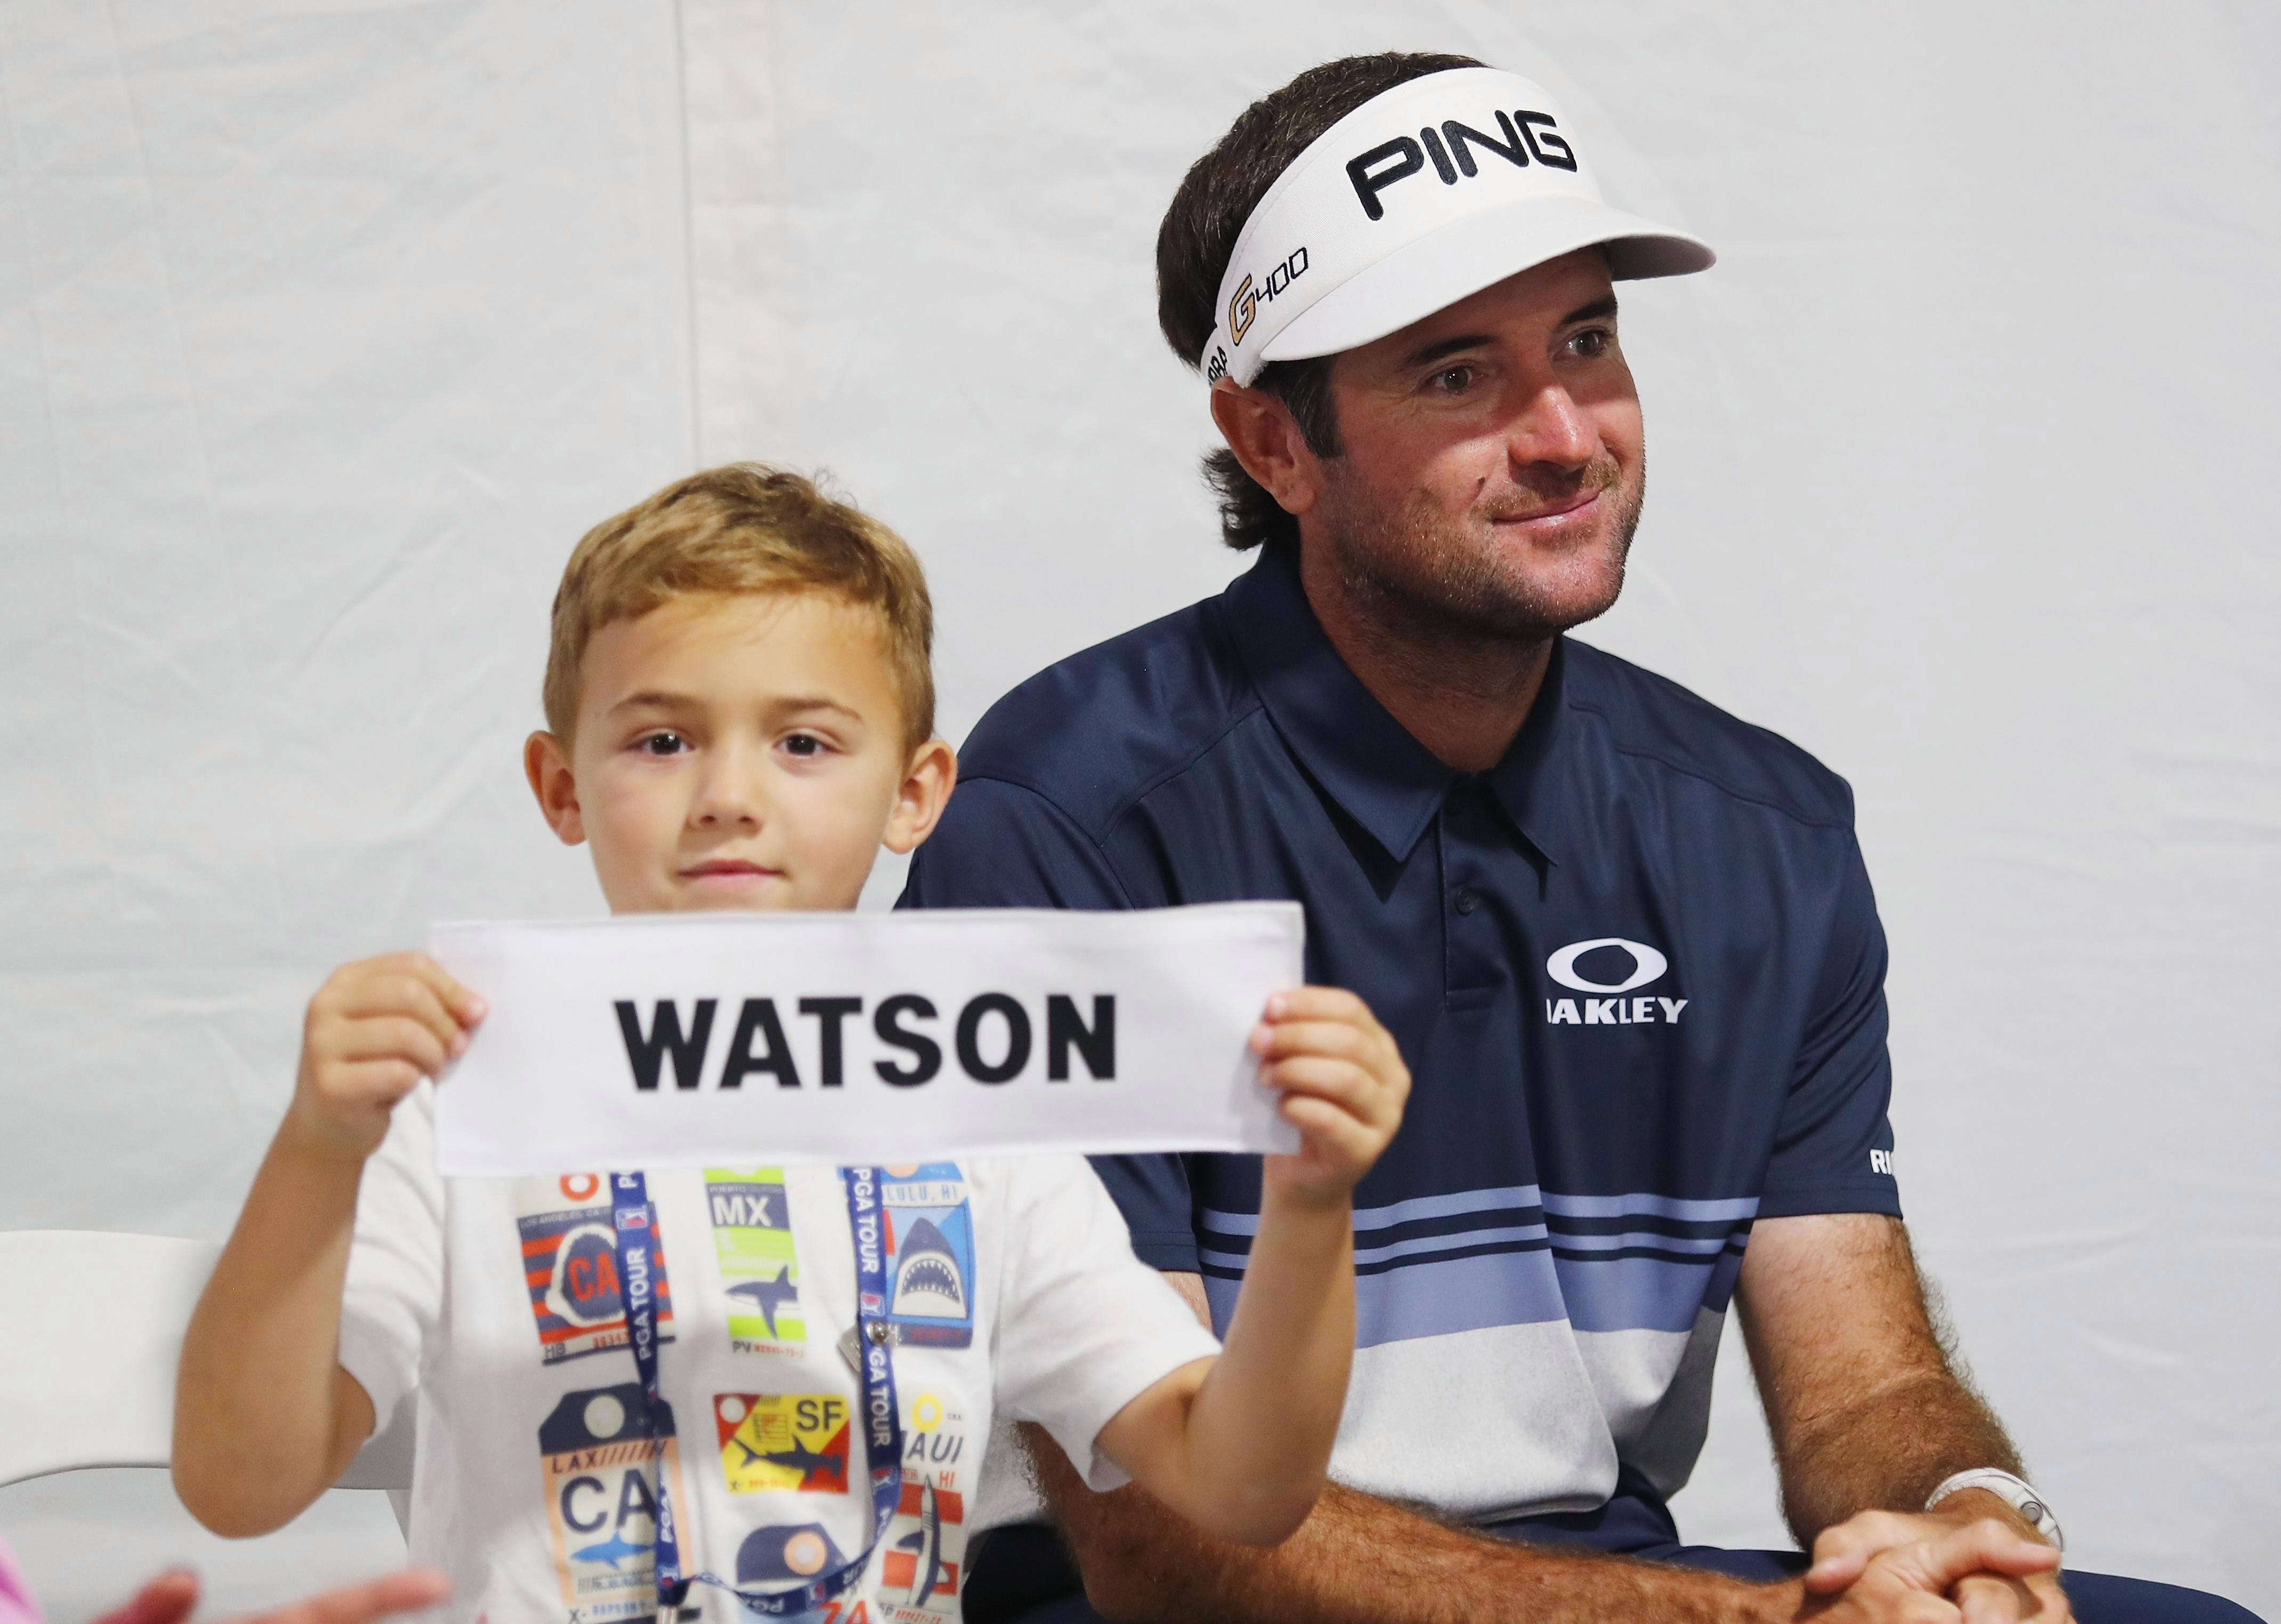 Bubba Watson said son Caleb was rooting for rival JB Holmes to win